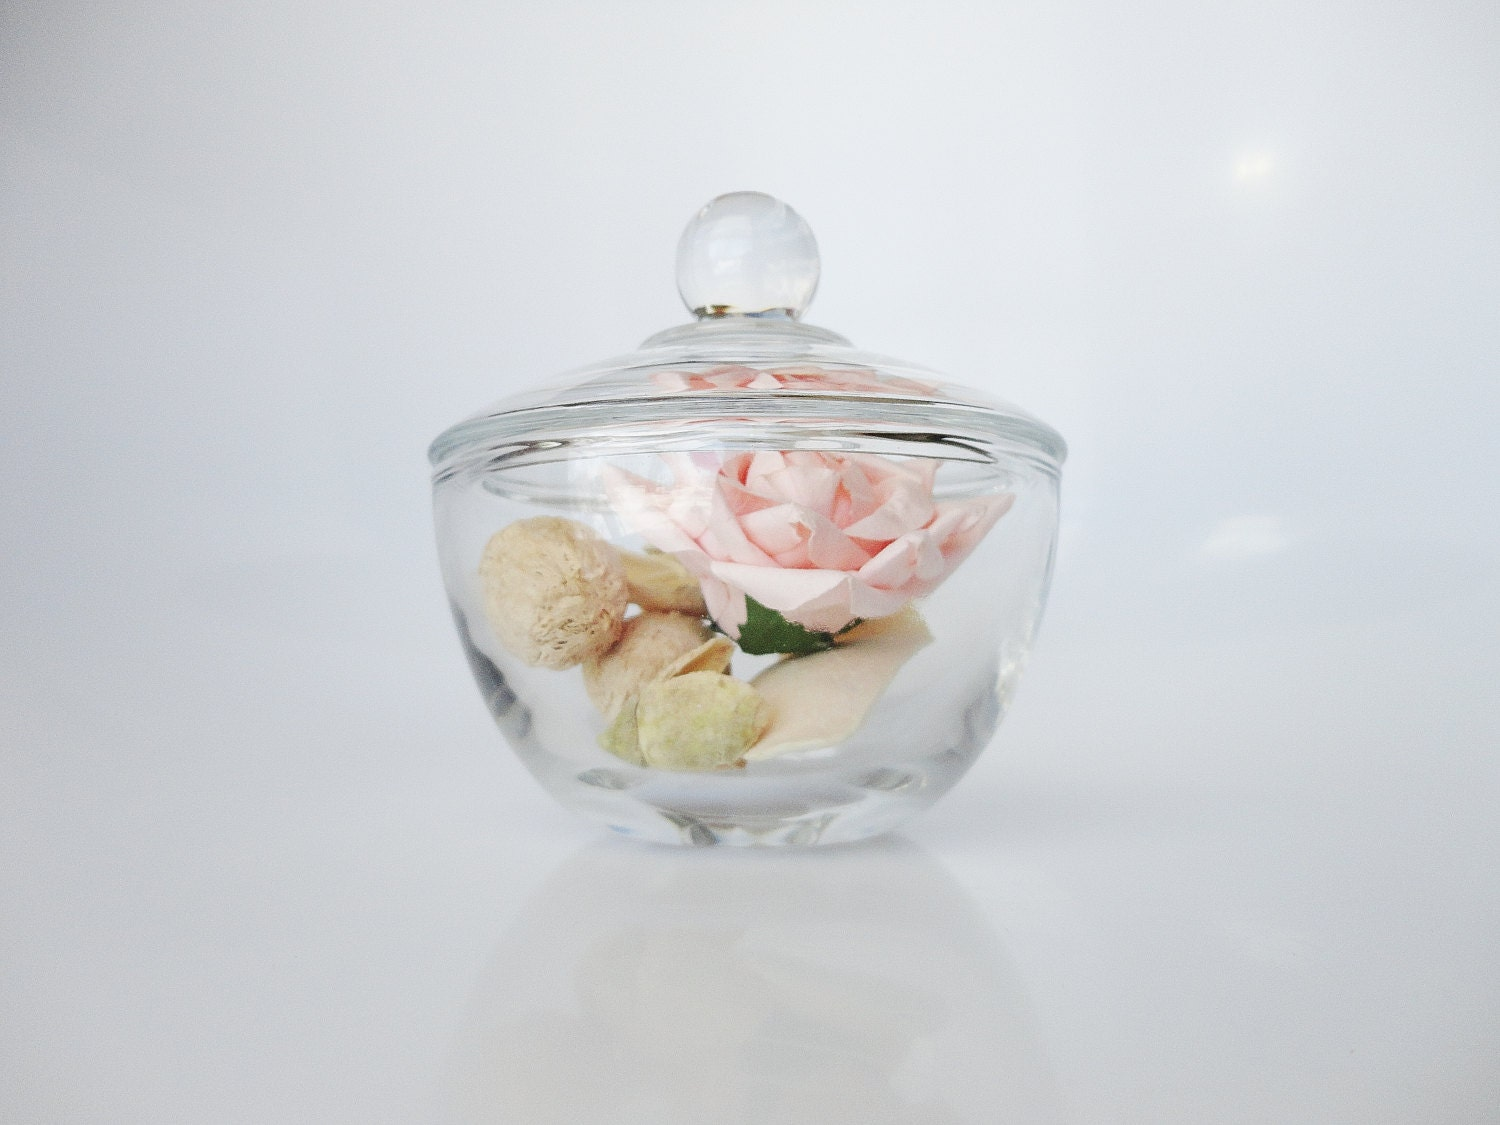 Vintage glass jar with lid glass jar lid glass jar for Small bathroom jars